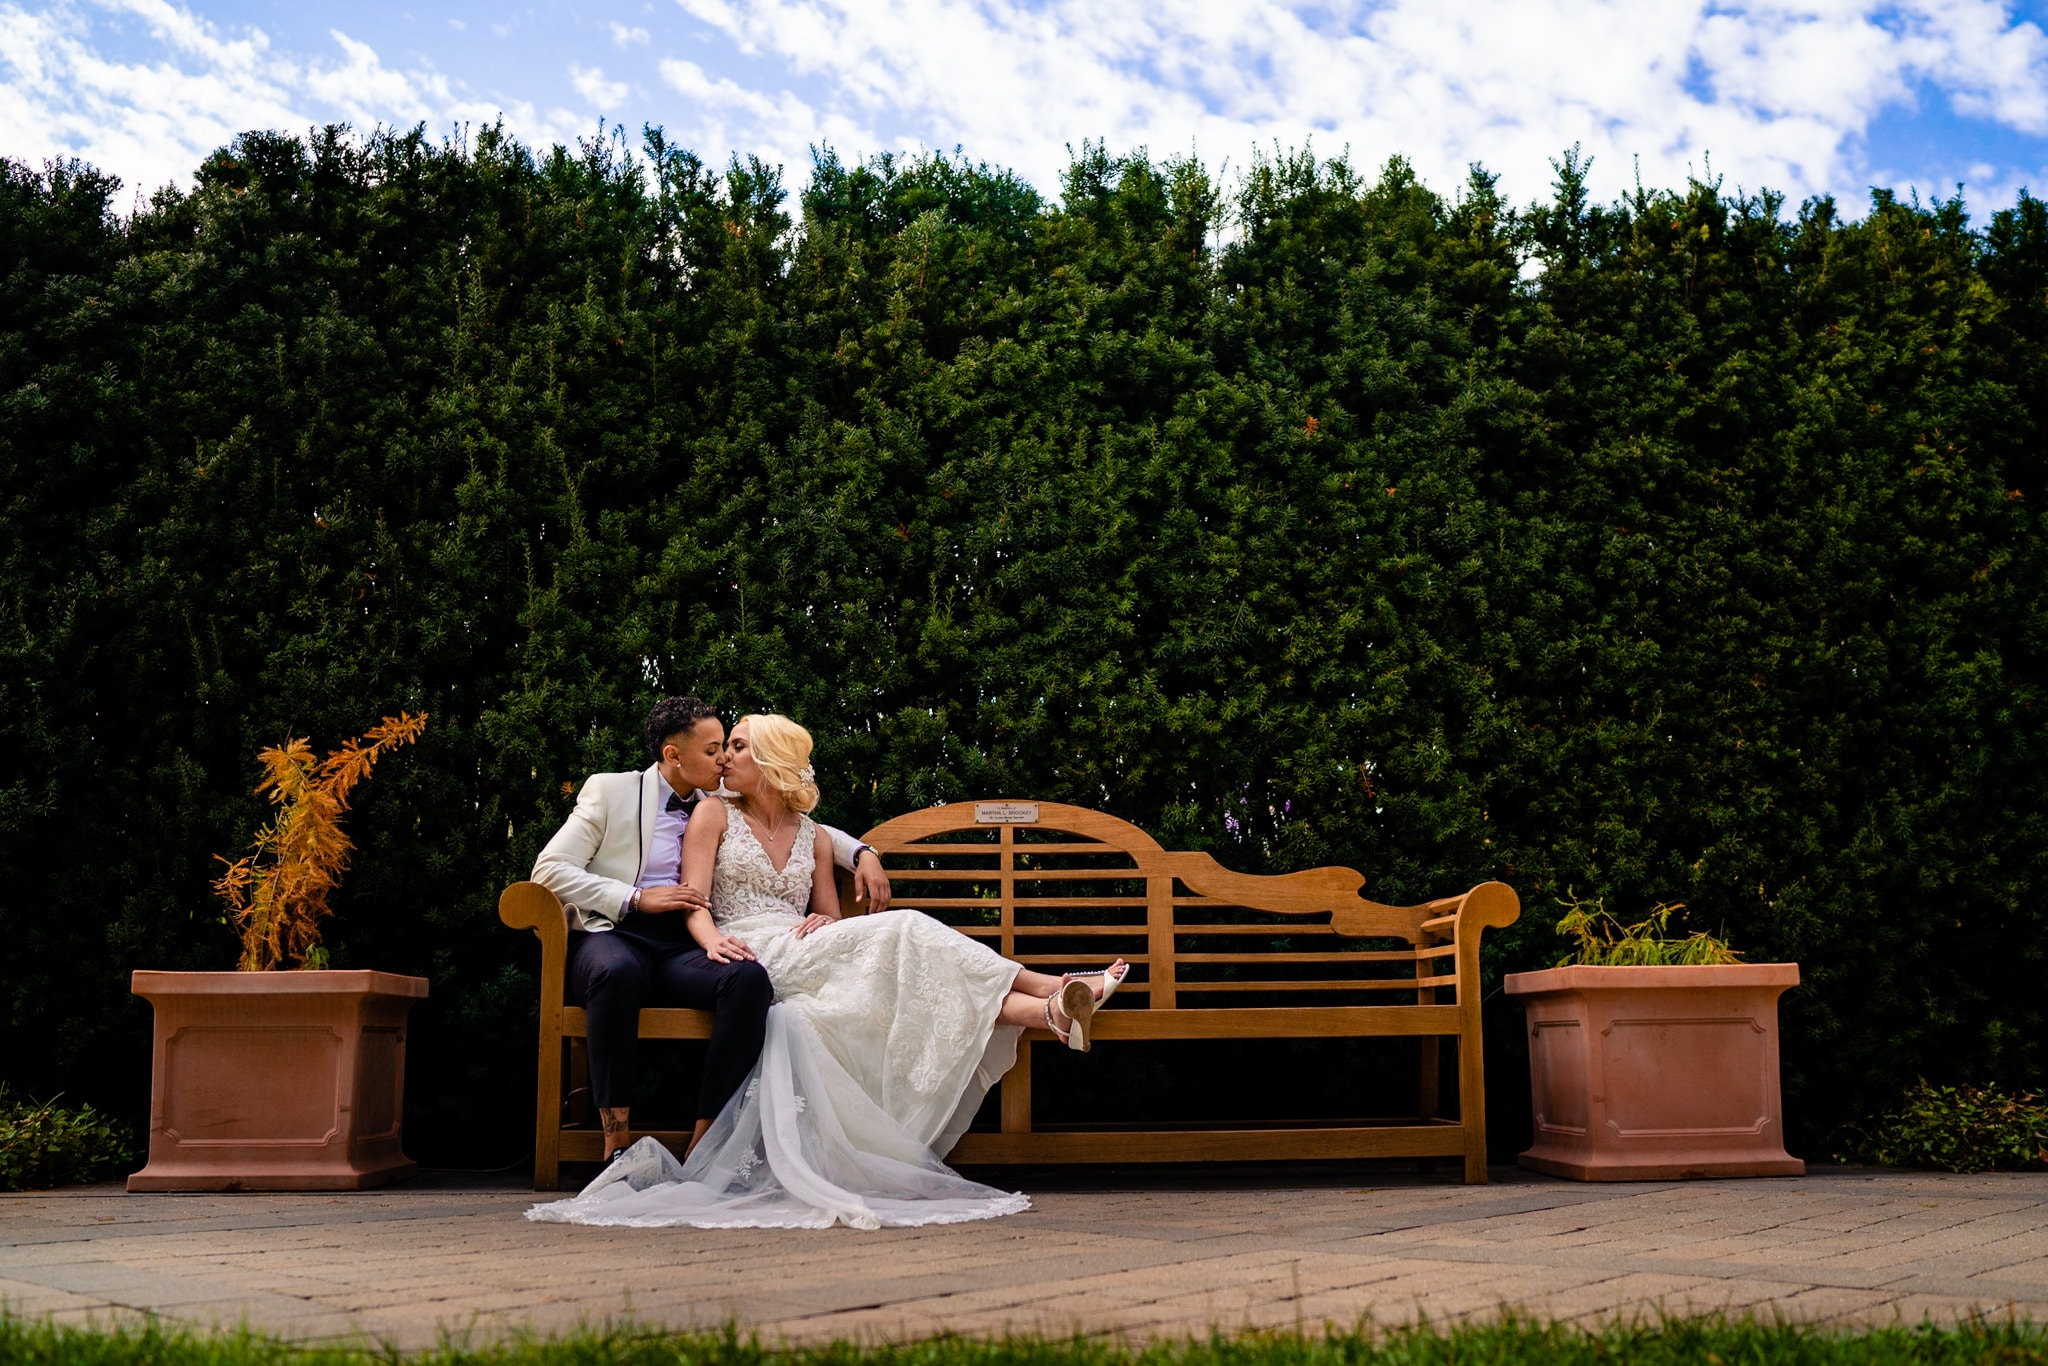 Two brides sit on a park bench in autumn